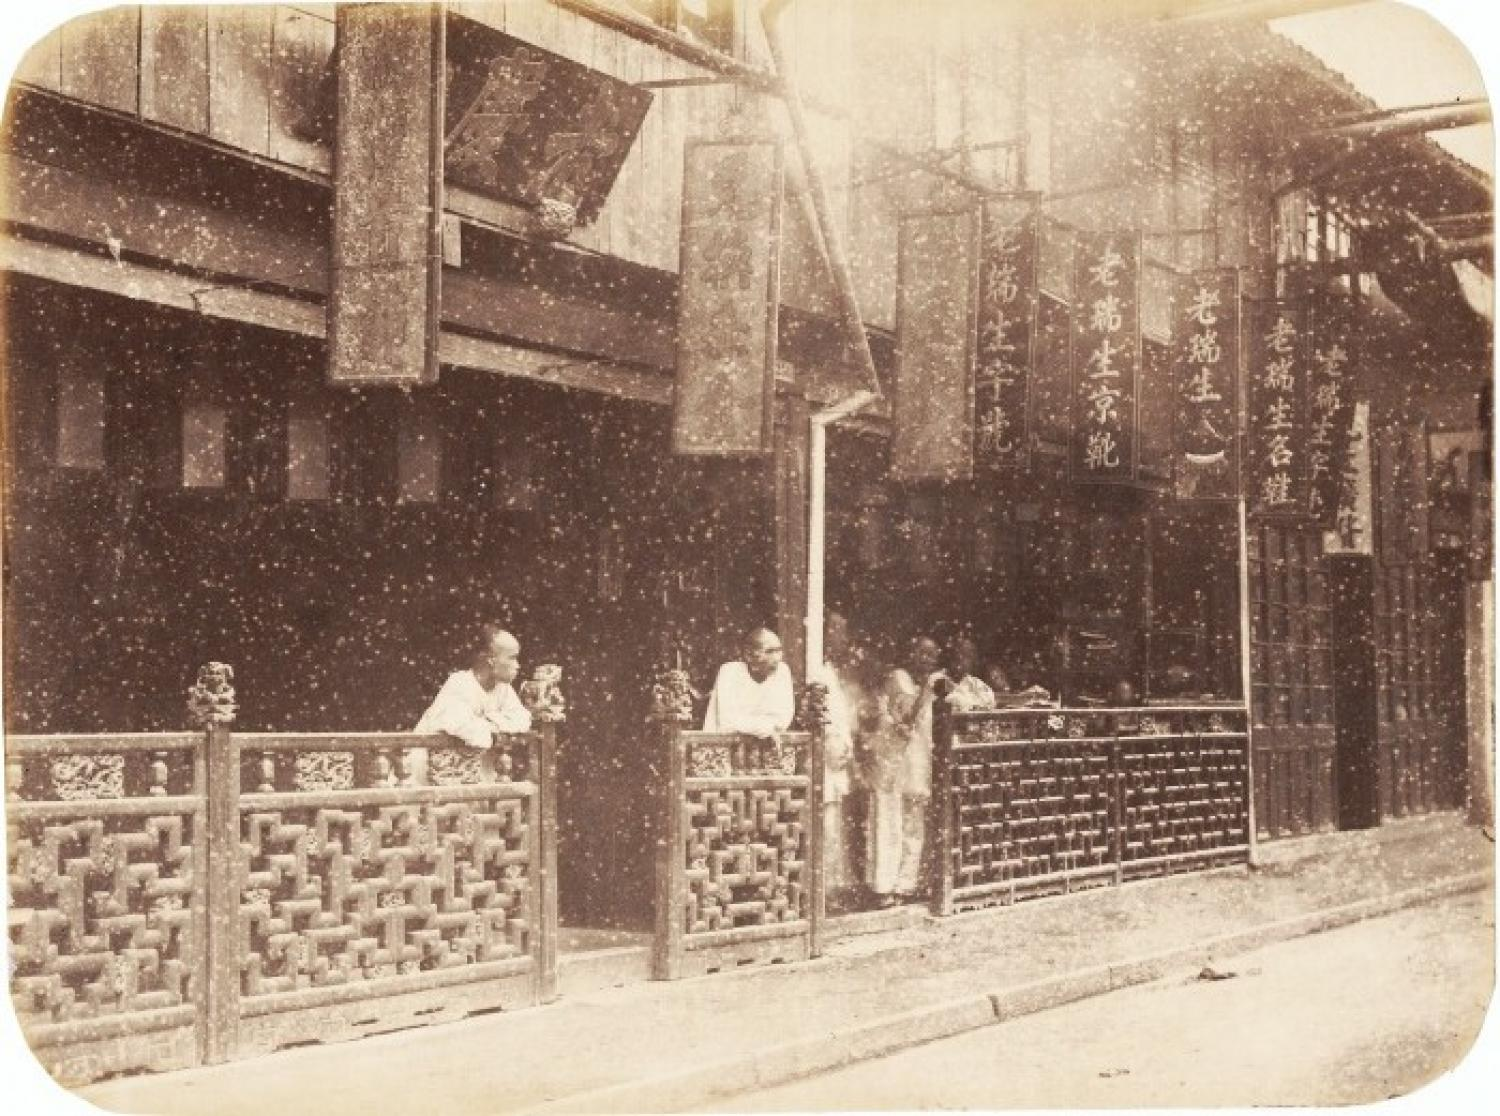 Shop in Shanghai By William Saunders C1870